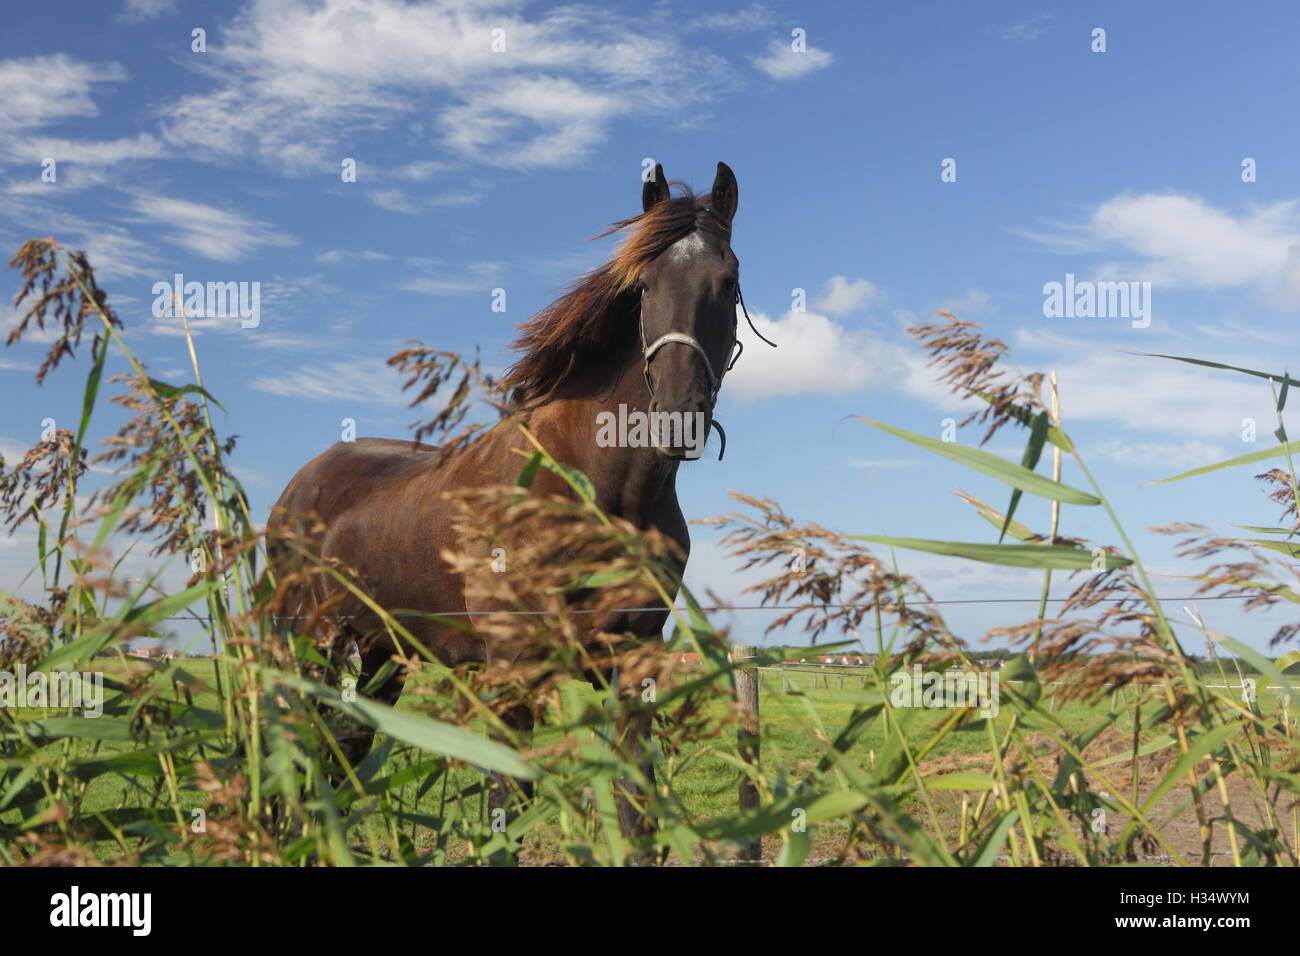 Beautiful Frisian stallion running free. - Stock Image